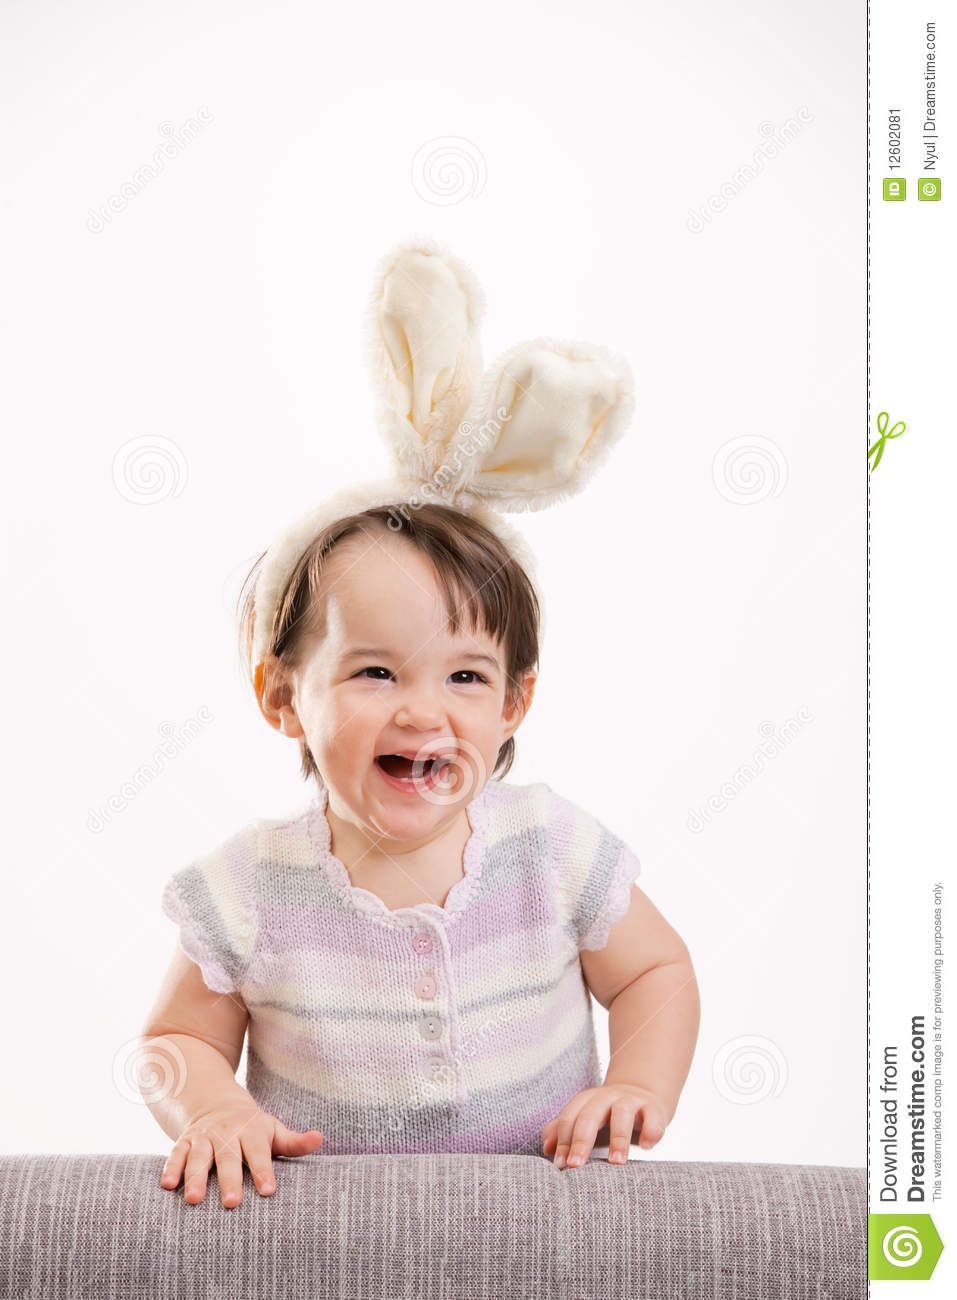 Happy Laughing Baby Girl Stock Image - Image: 12602081